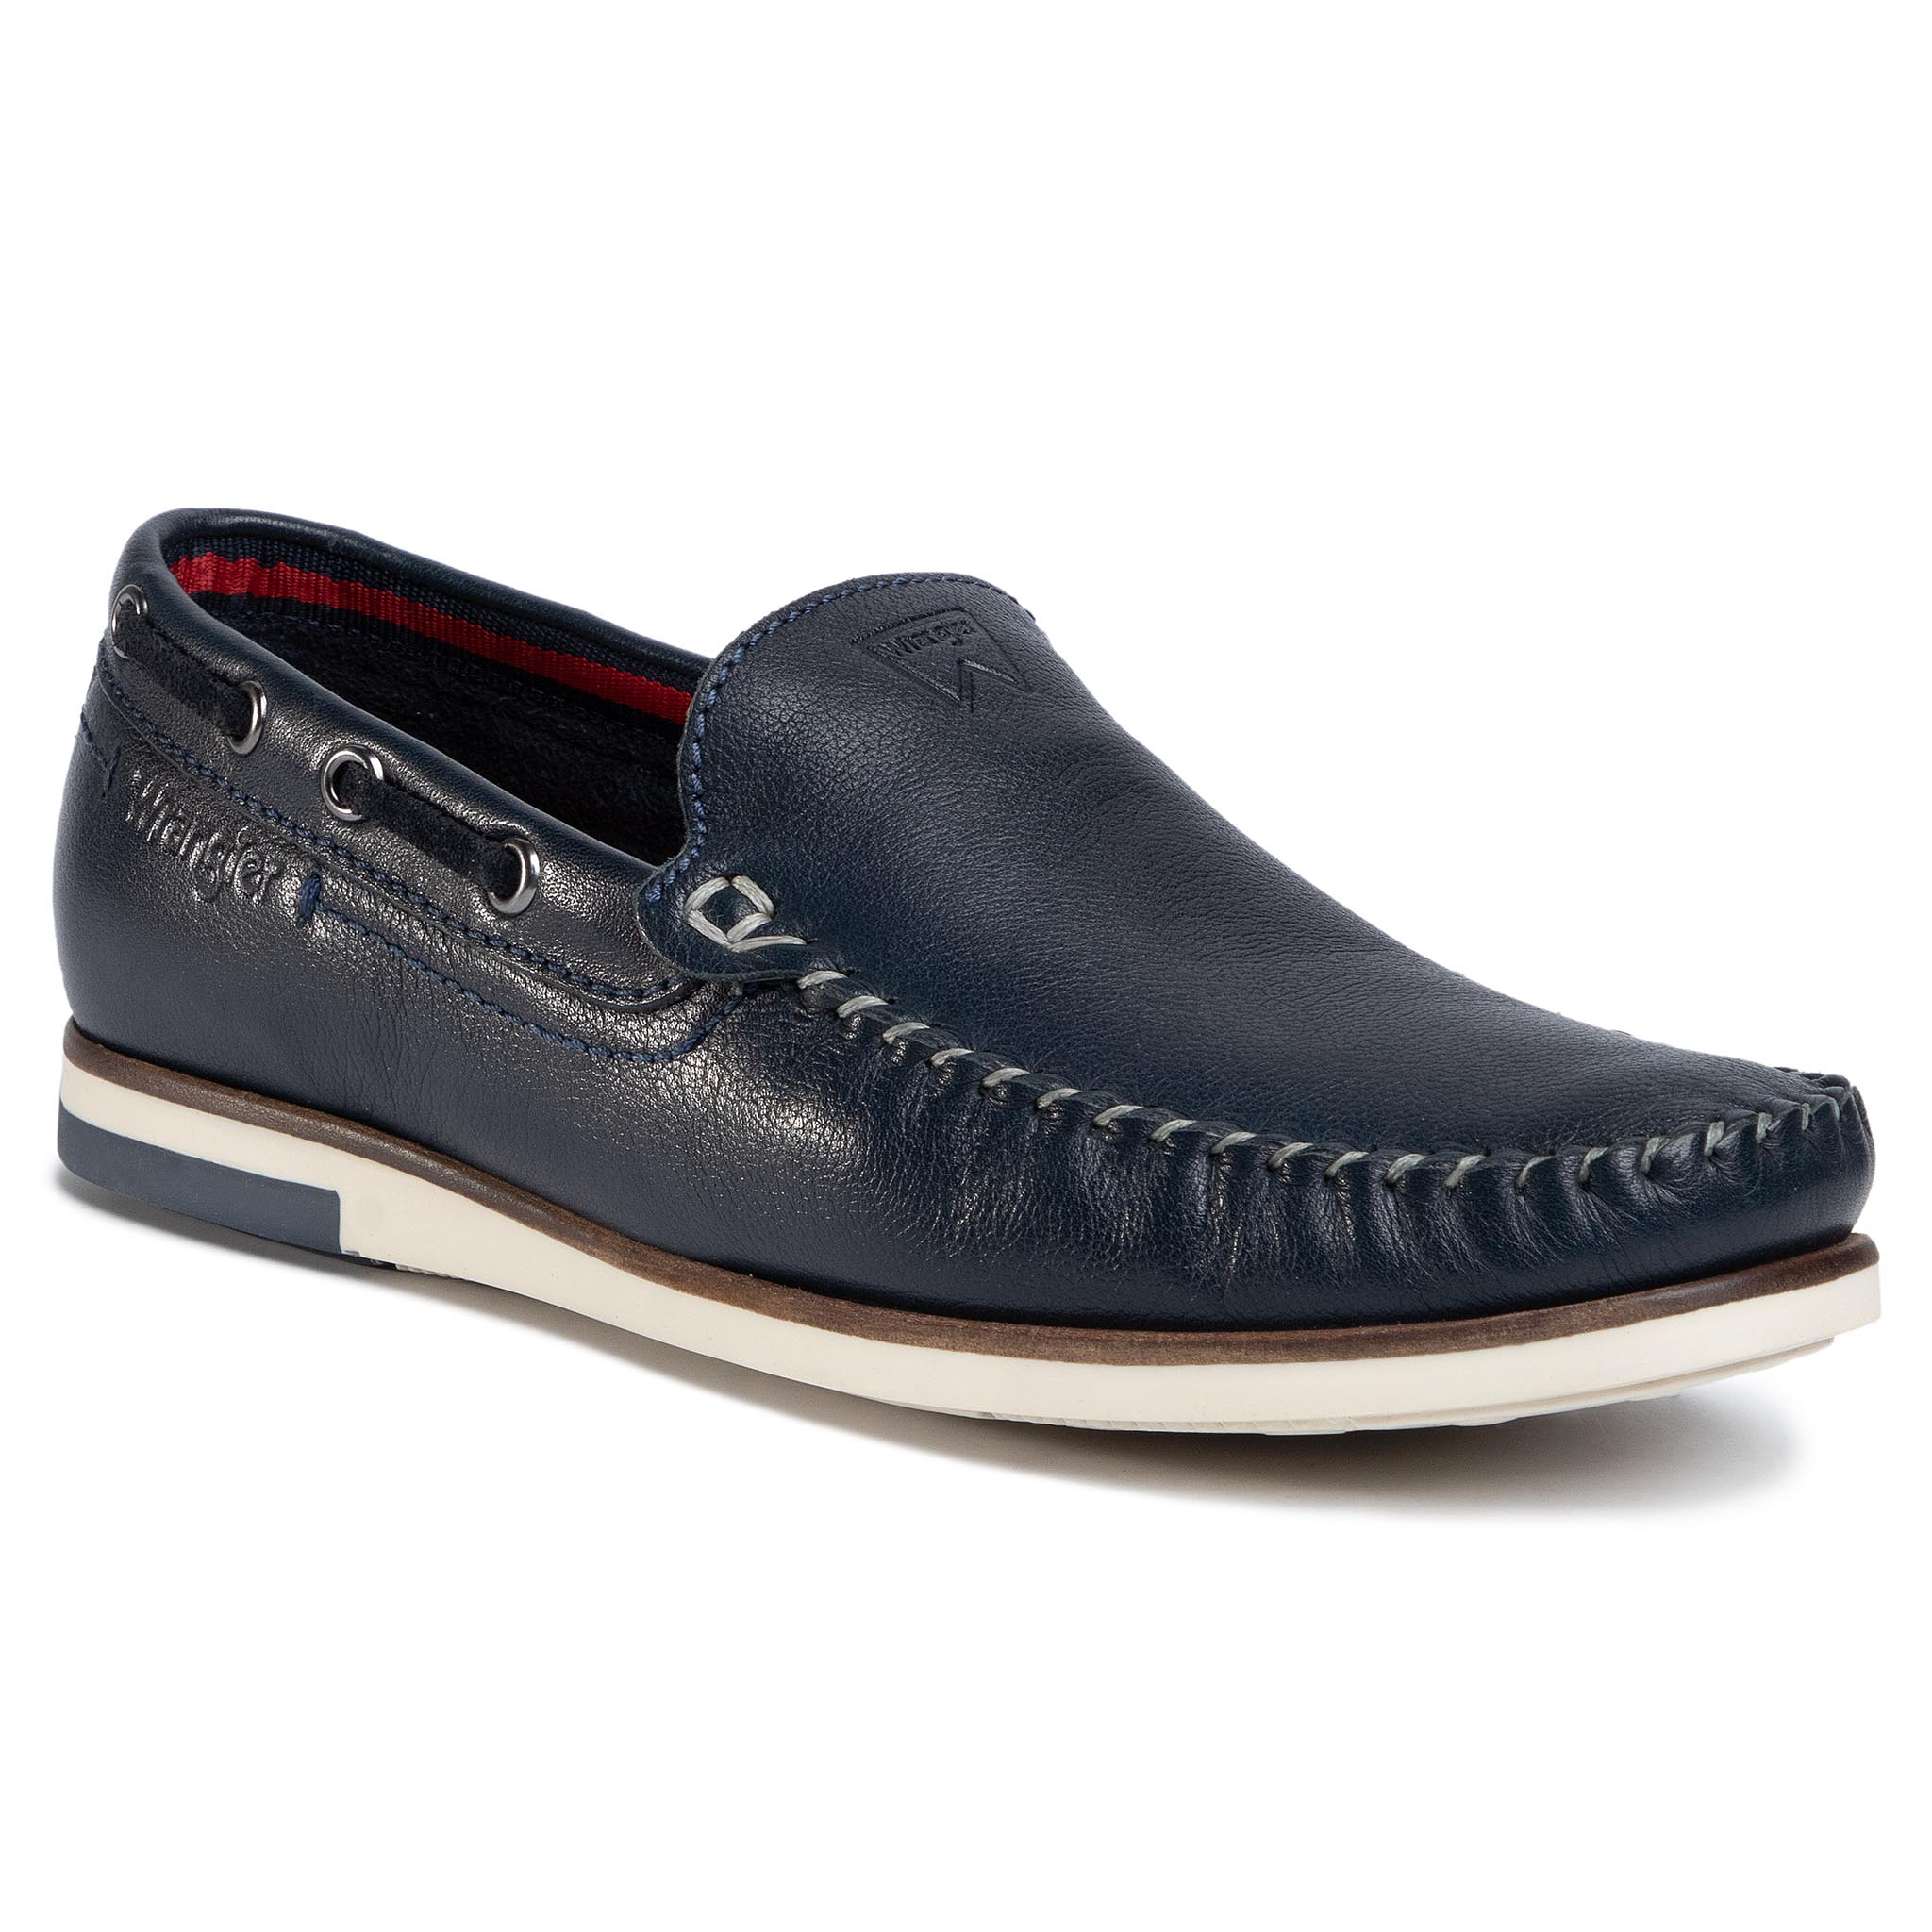 Mocasini Wrangler - Sharky Leather Wm01141a Navy 016 imagine